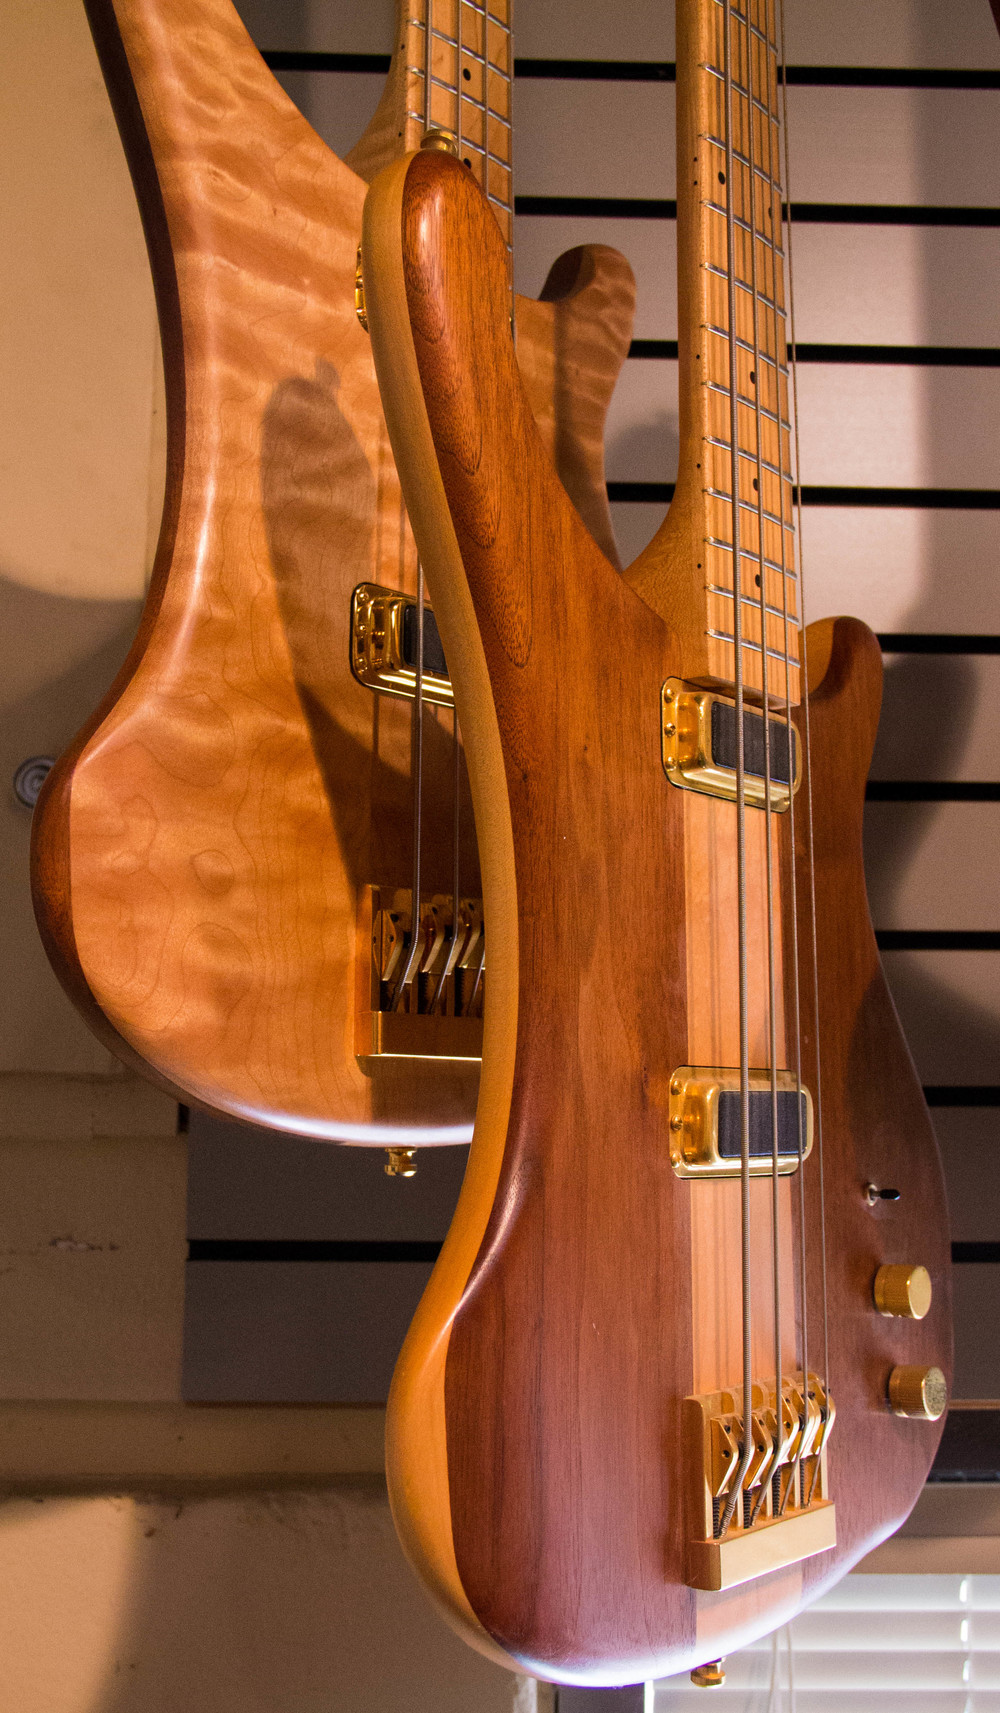 These model 4004 basses are crafted from maple and walnut, sandwiched together. The instrument in the foreground is mostly Walnut; the one in the background features a beautiful curly-maple top.